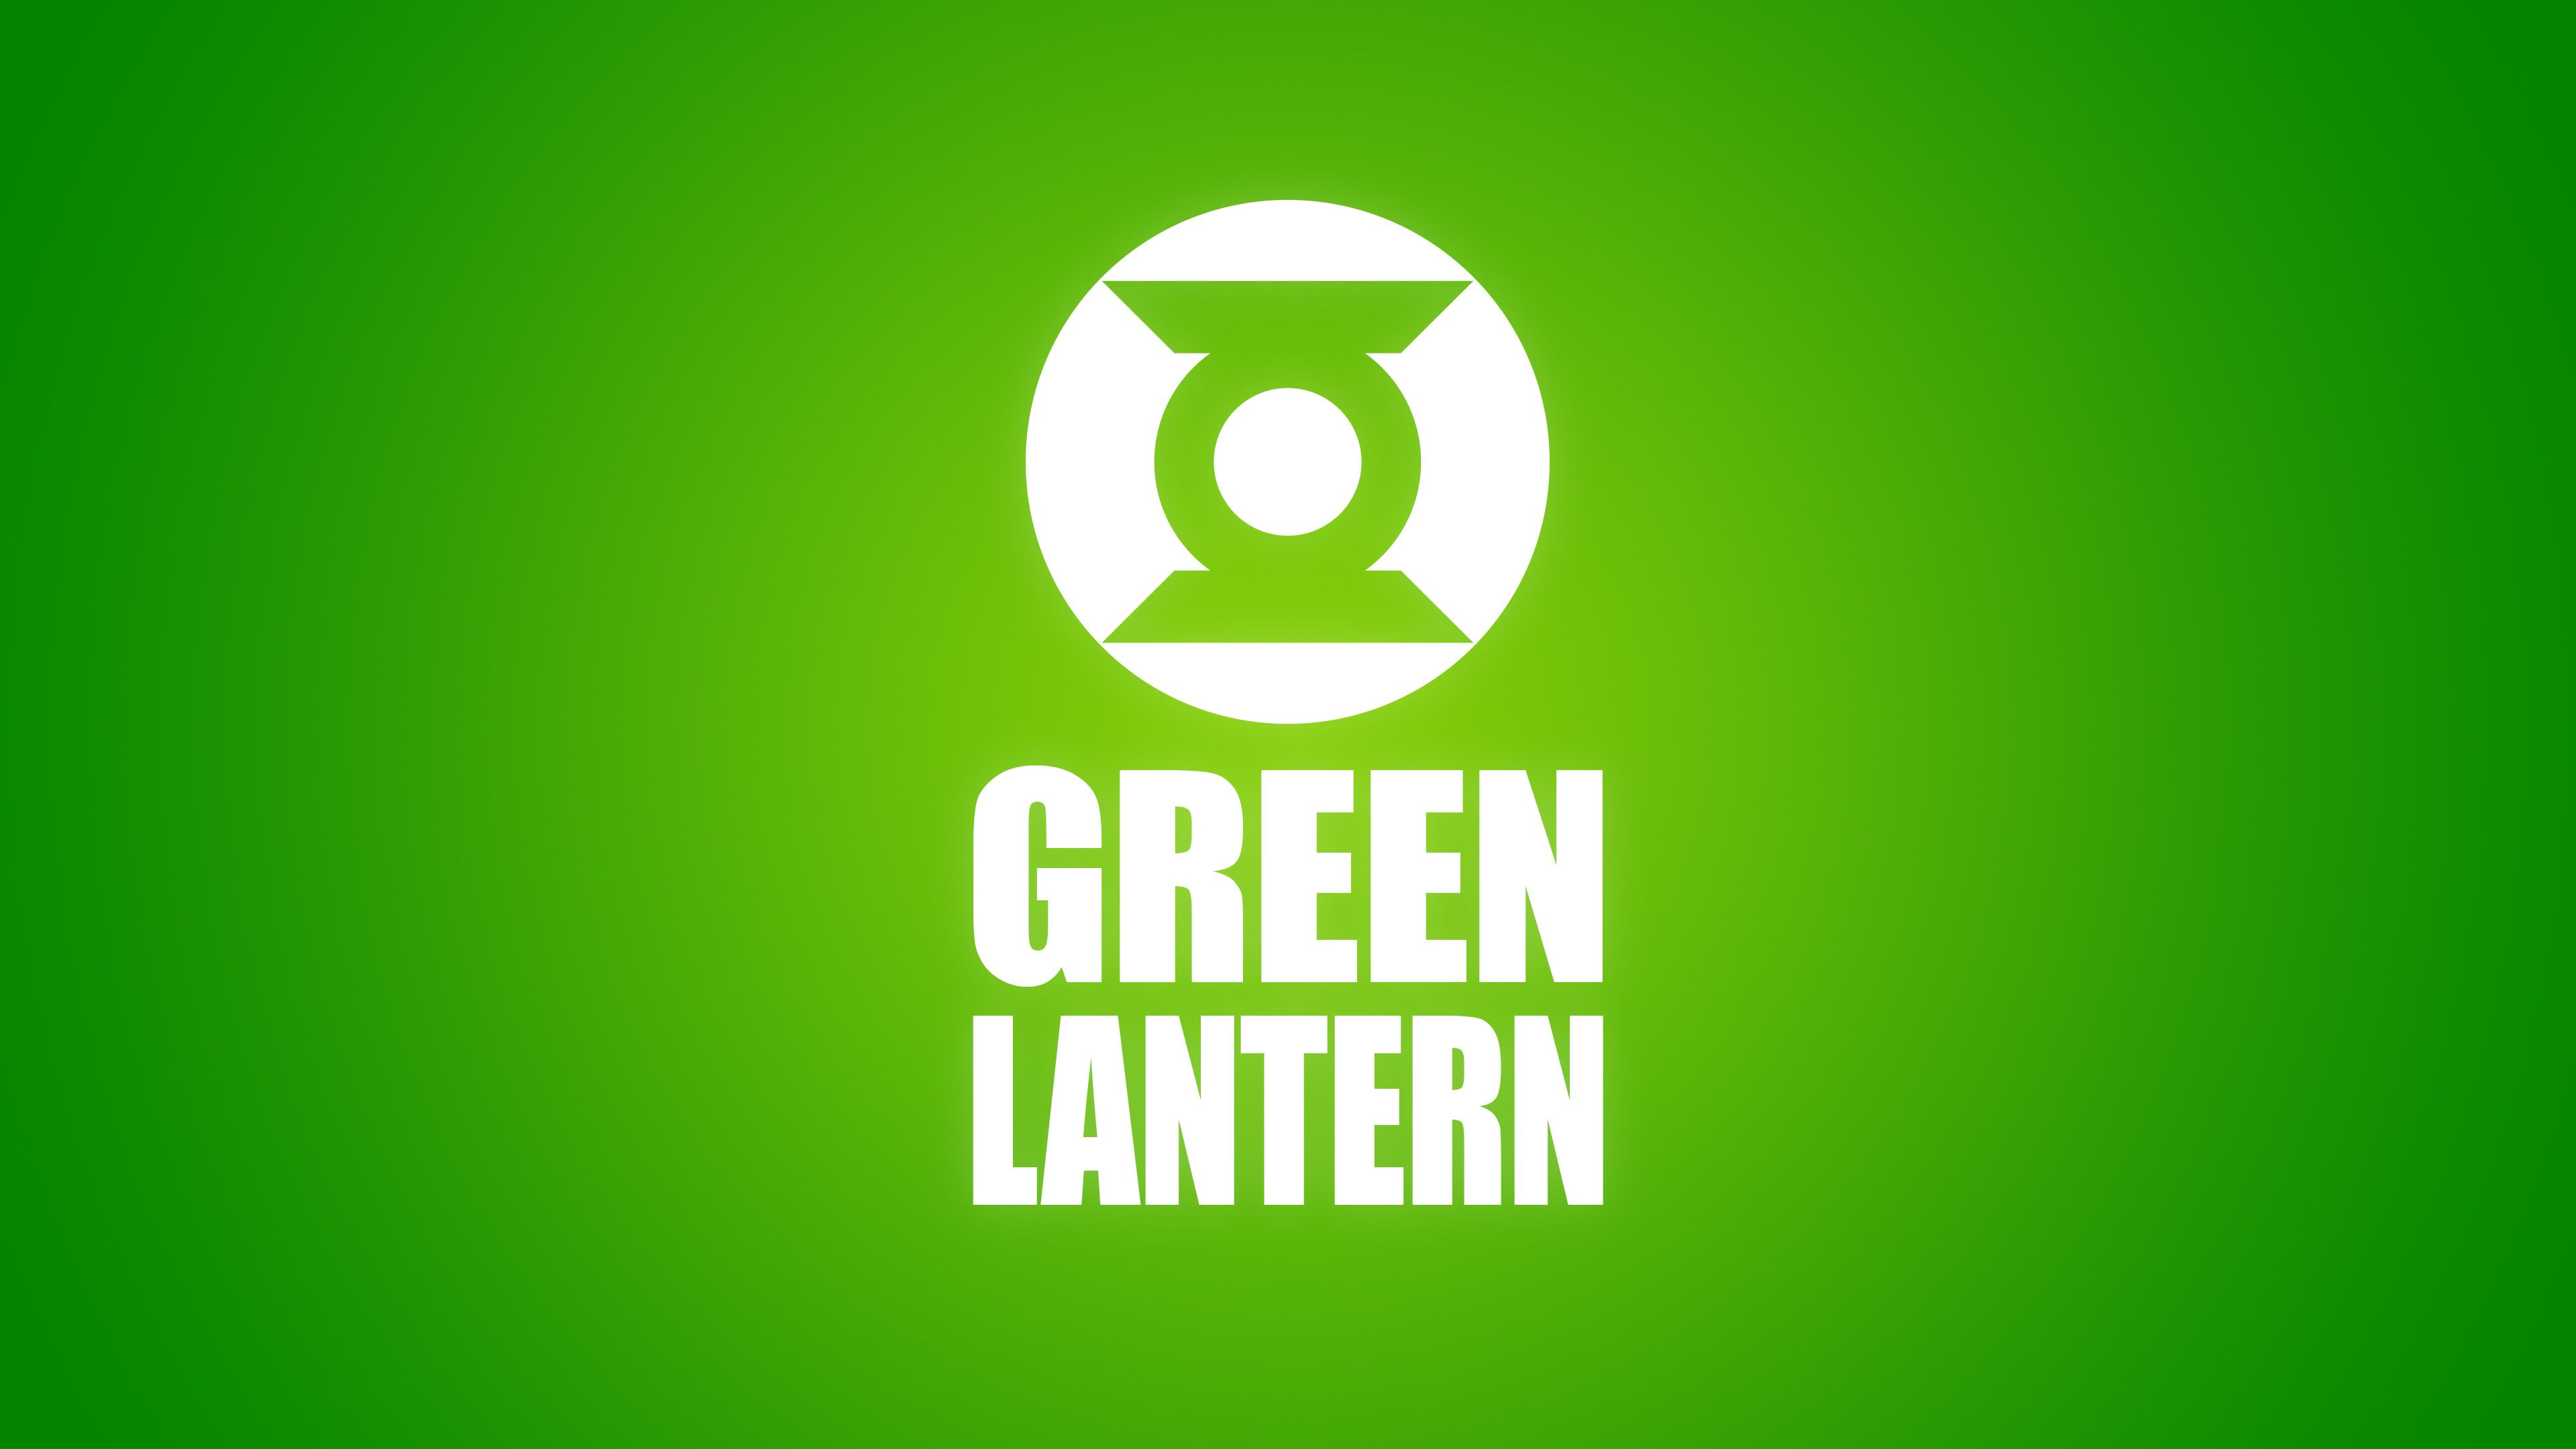 Green Lantern Logo 4k, HD Superheroes, 4k Wallpapers, Image, Backgrounds, Photos and Pictures